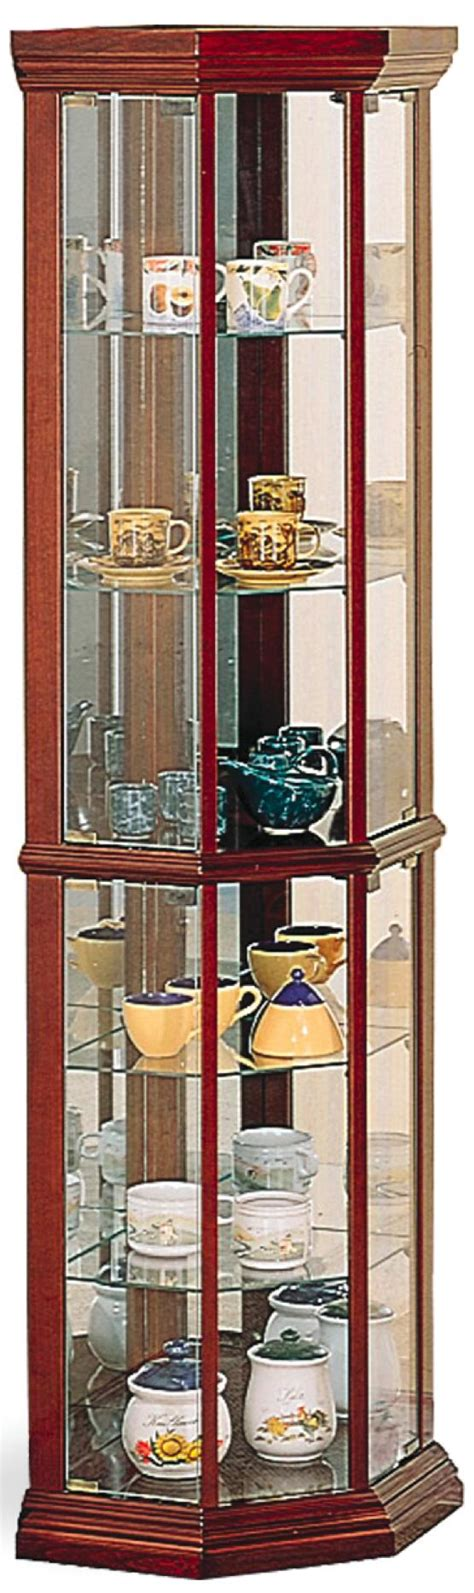 coaster curio cabinet assembly coaster curio cabinets solid wood cherry glass corner